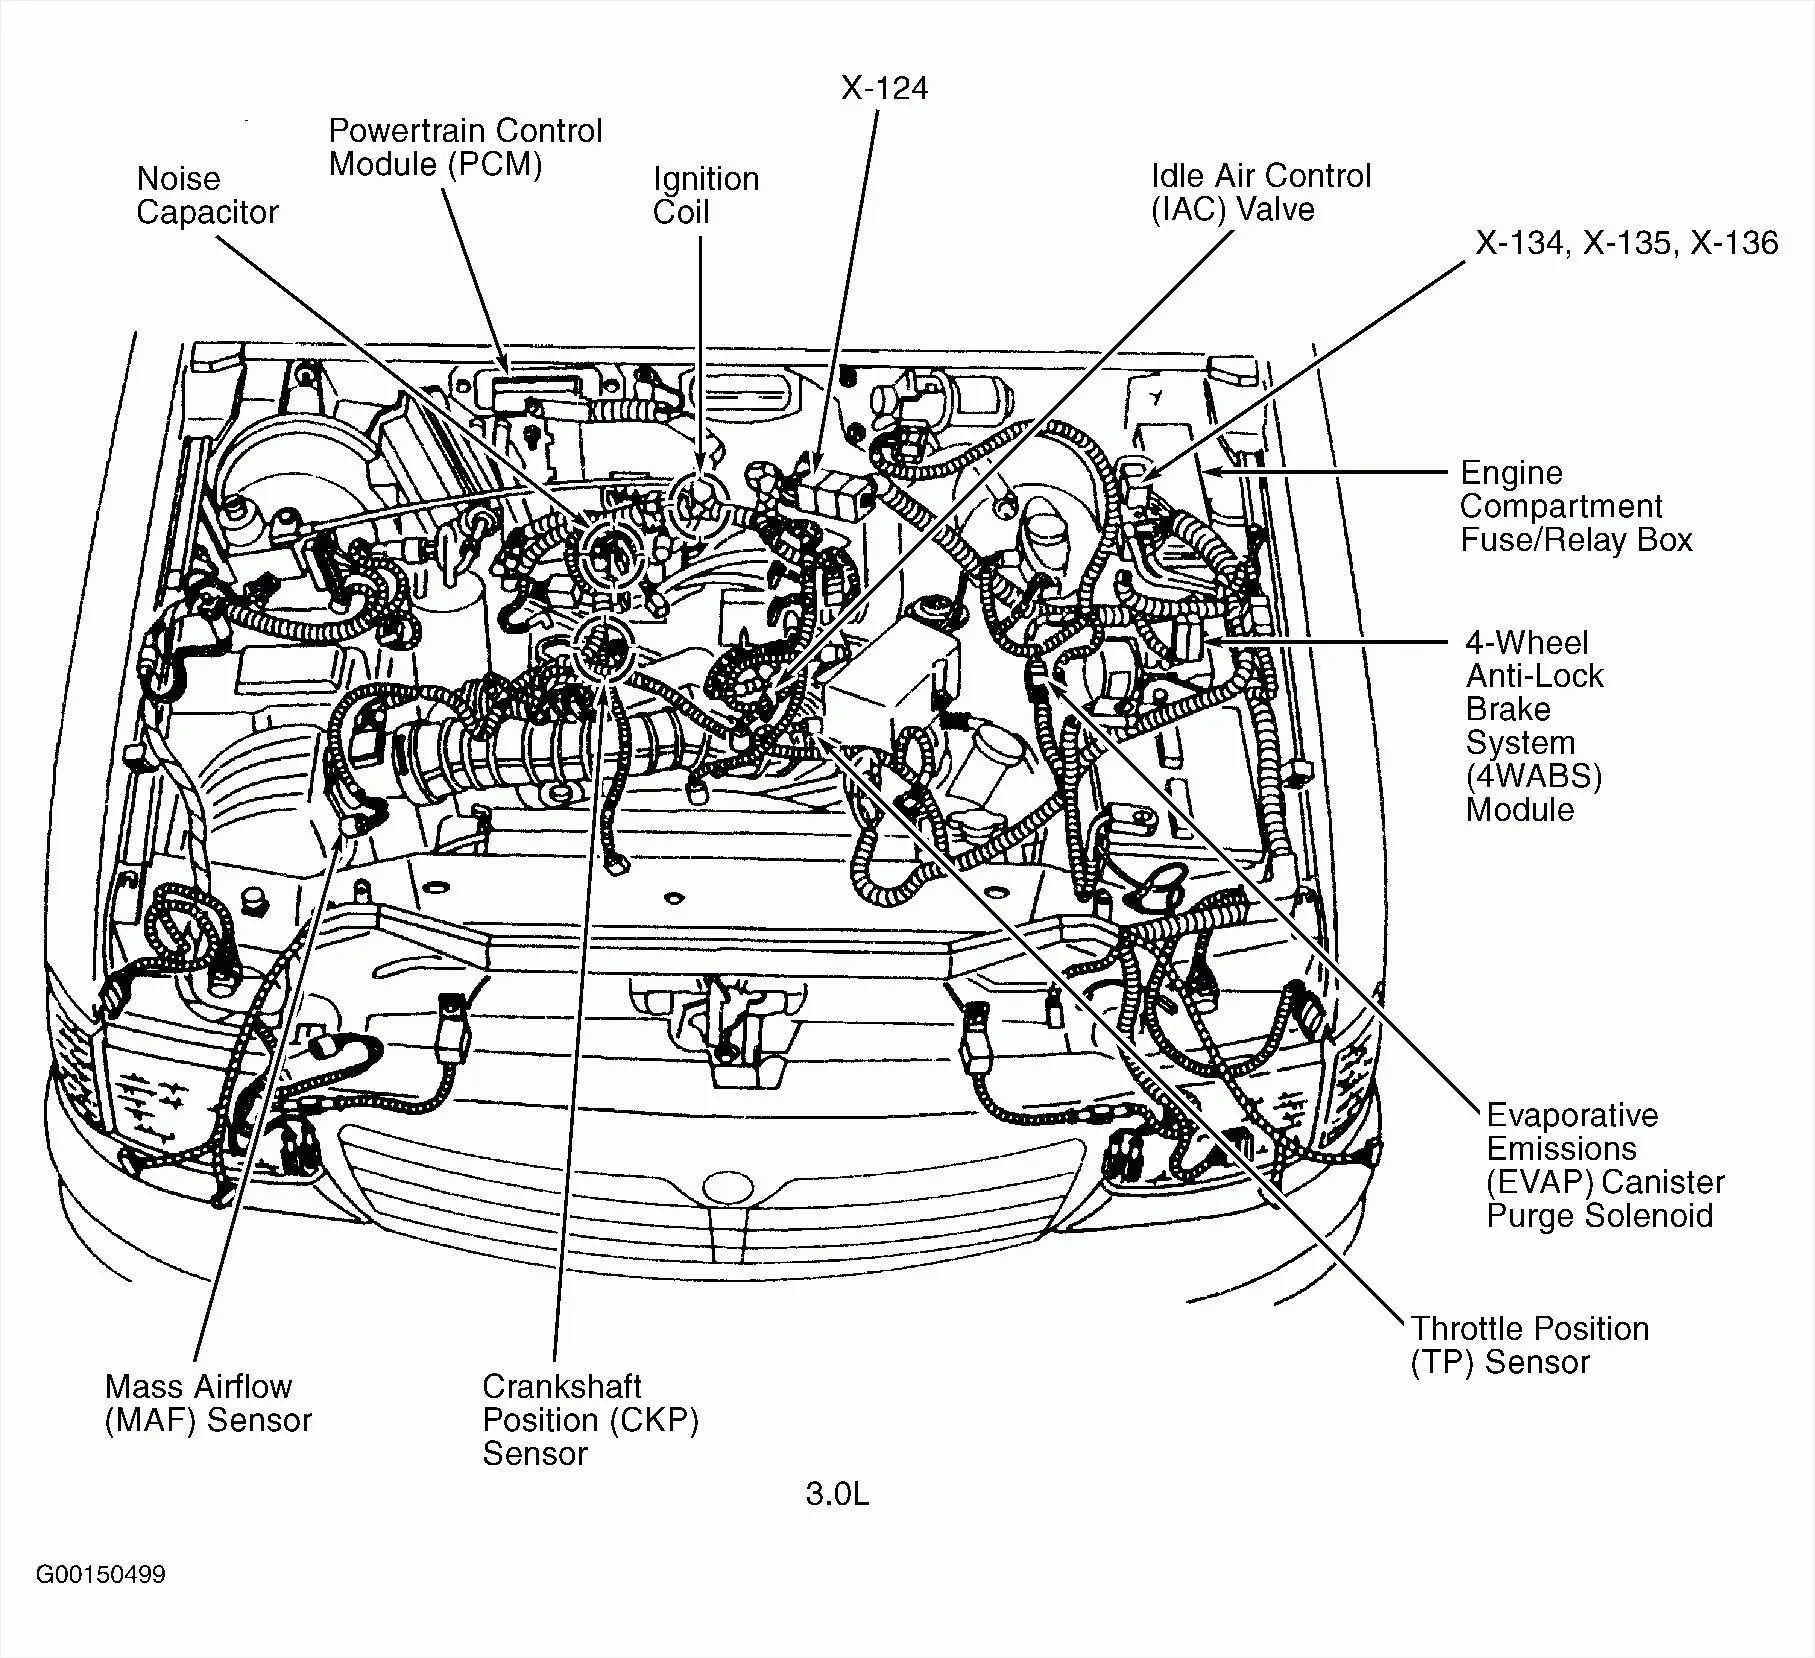 hight resolution of 95 vw jetta engine diagram wiring diagram expert 1998 vw jetta engine diagram 1995 volkswagen jetta